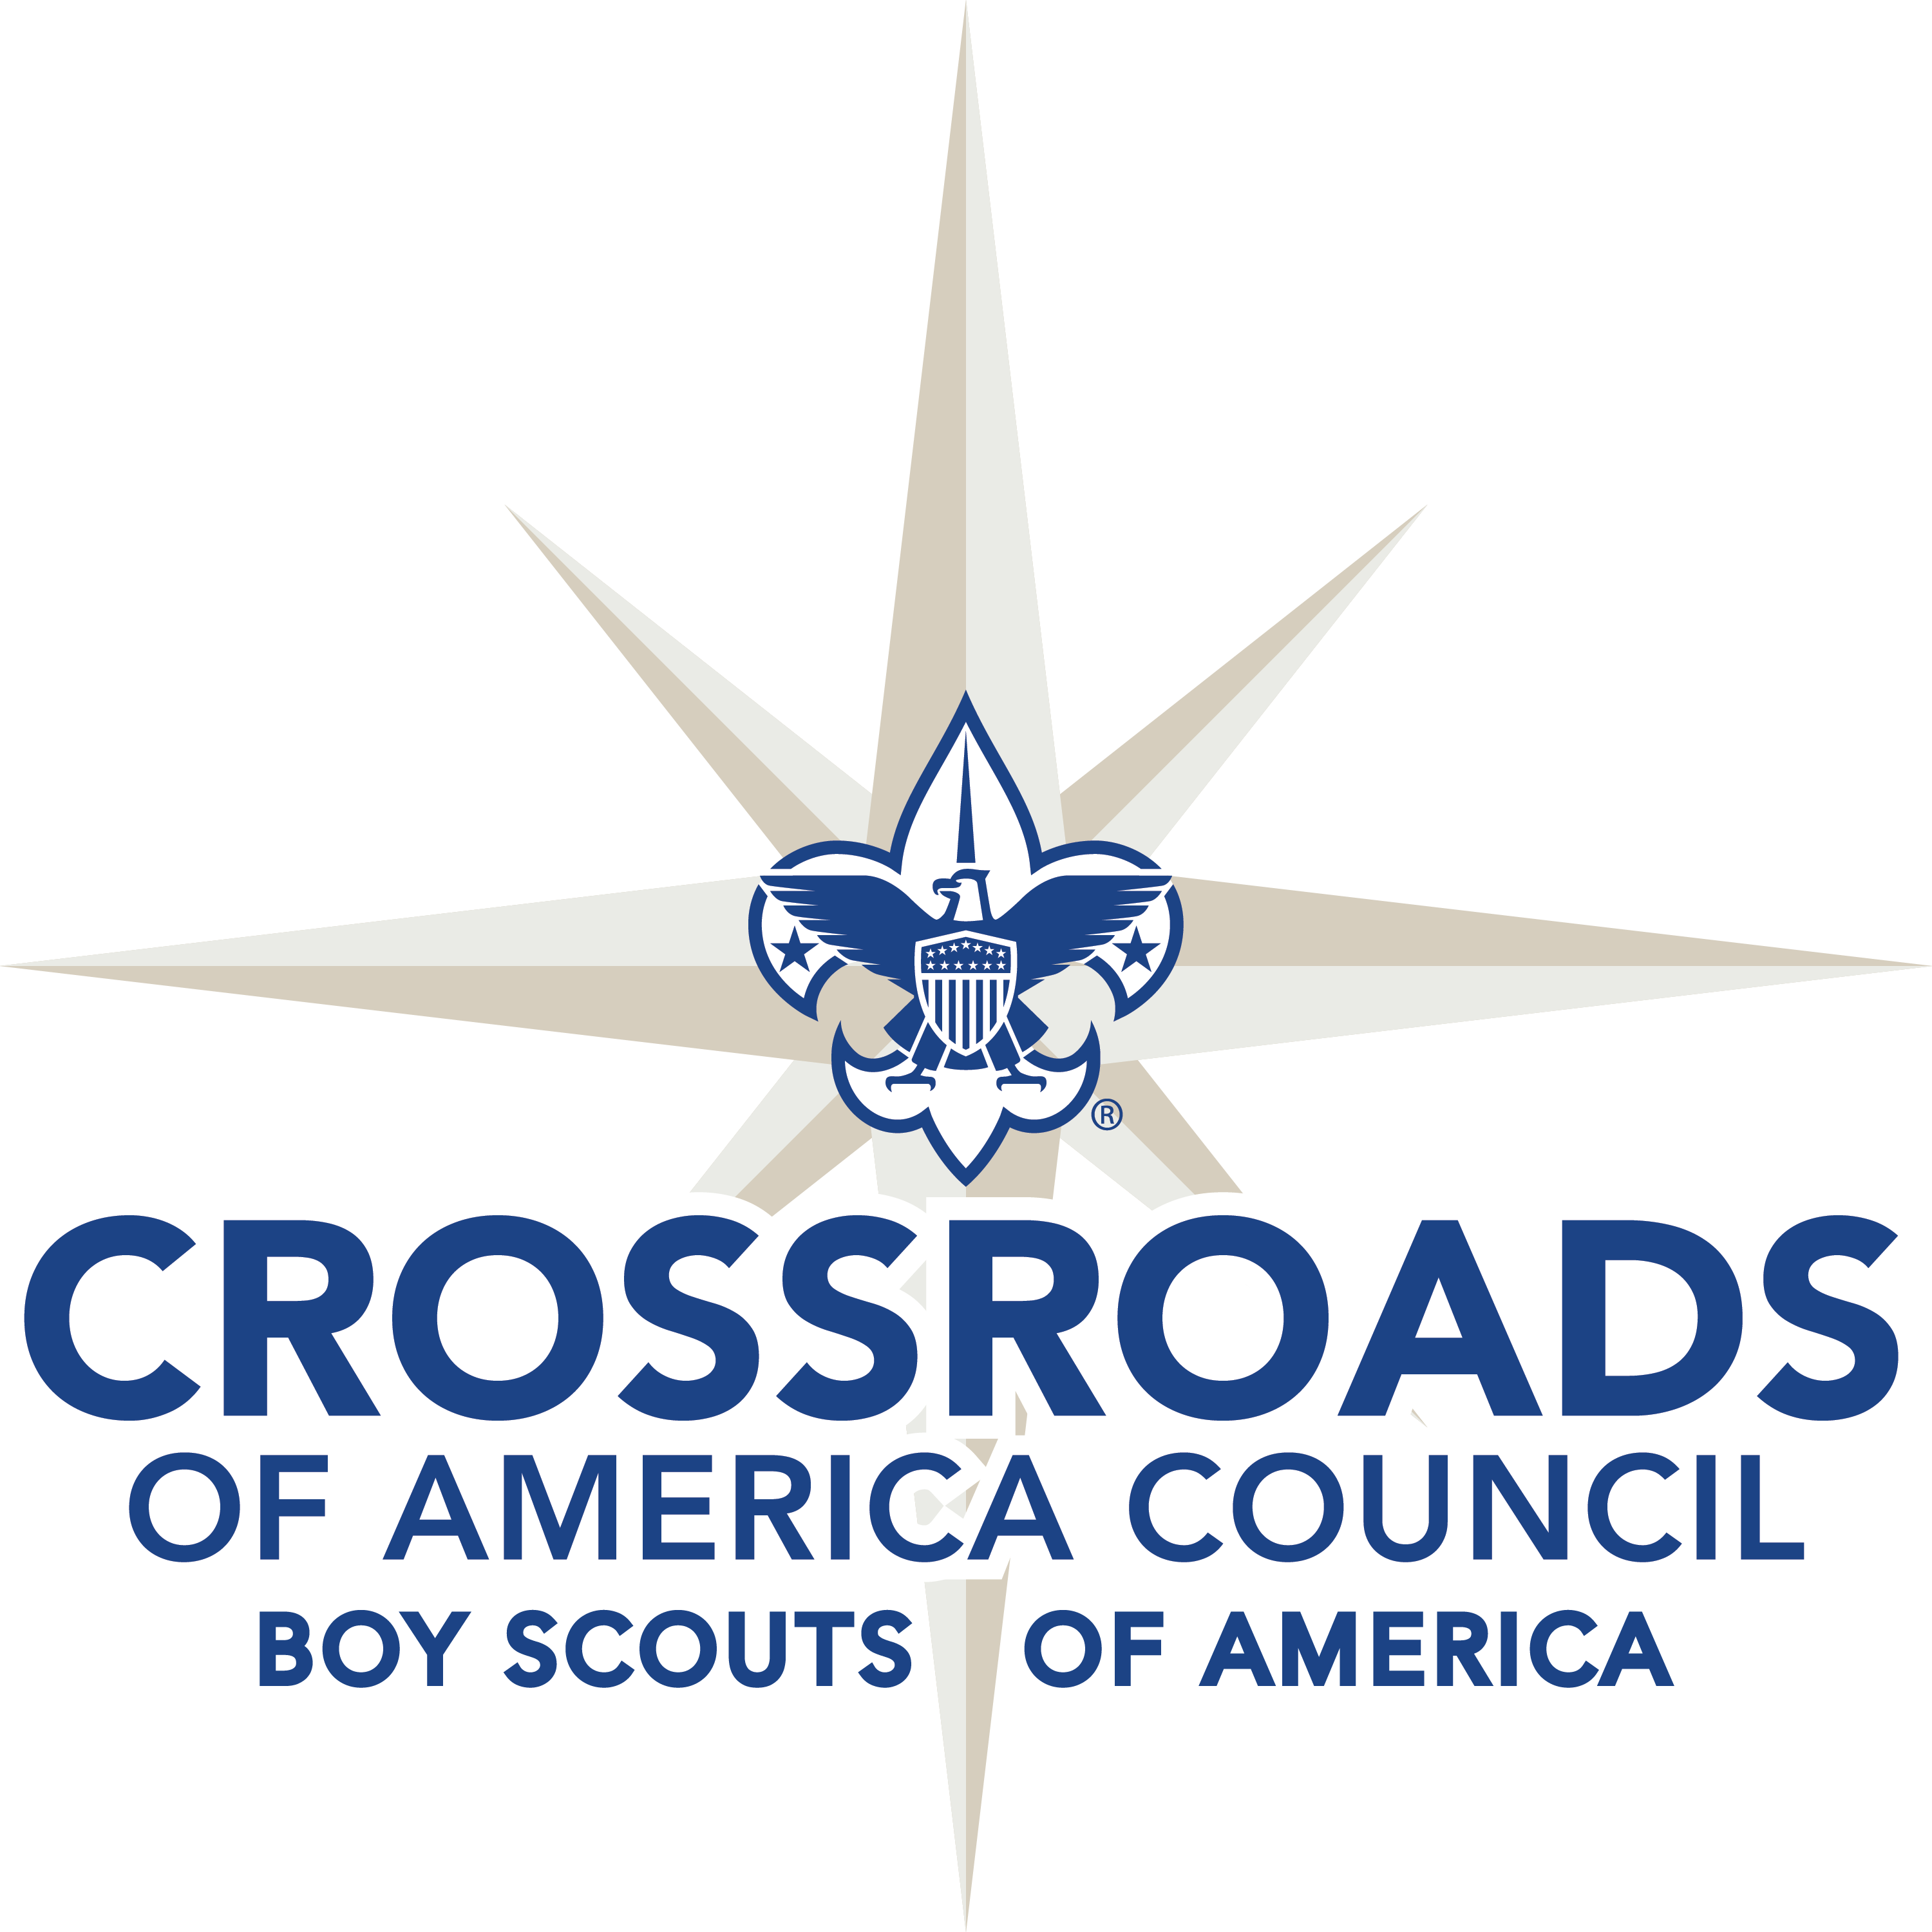 Crossroads of America Council